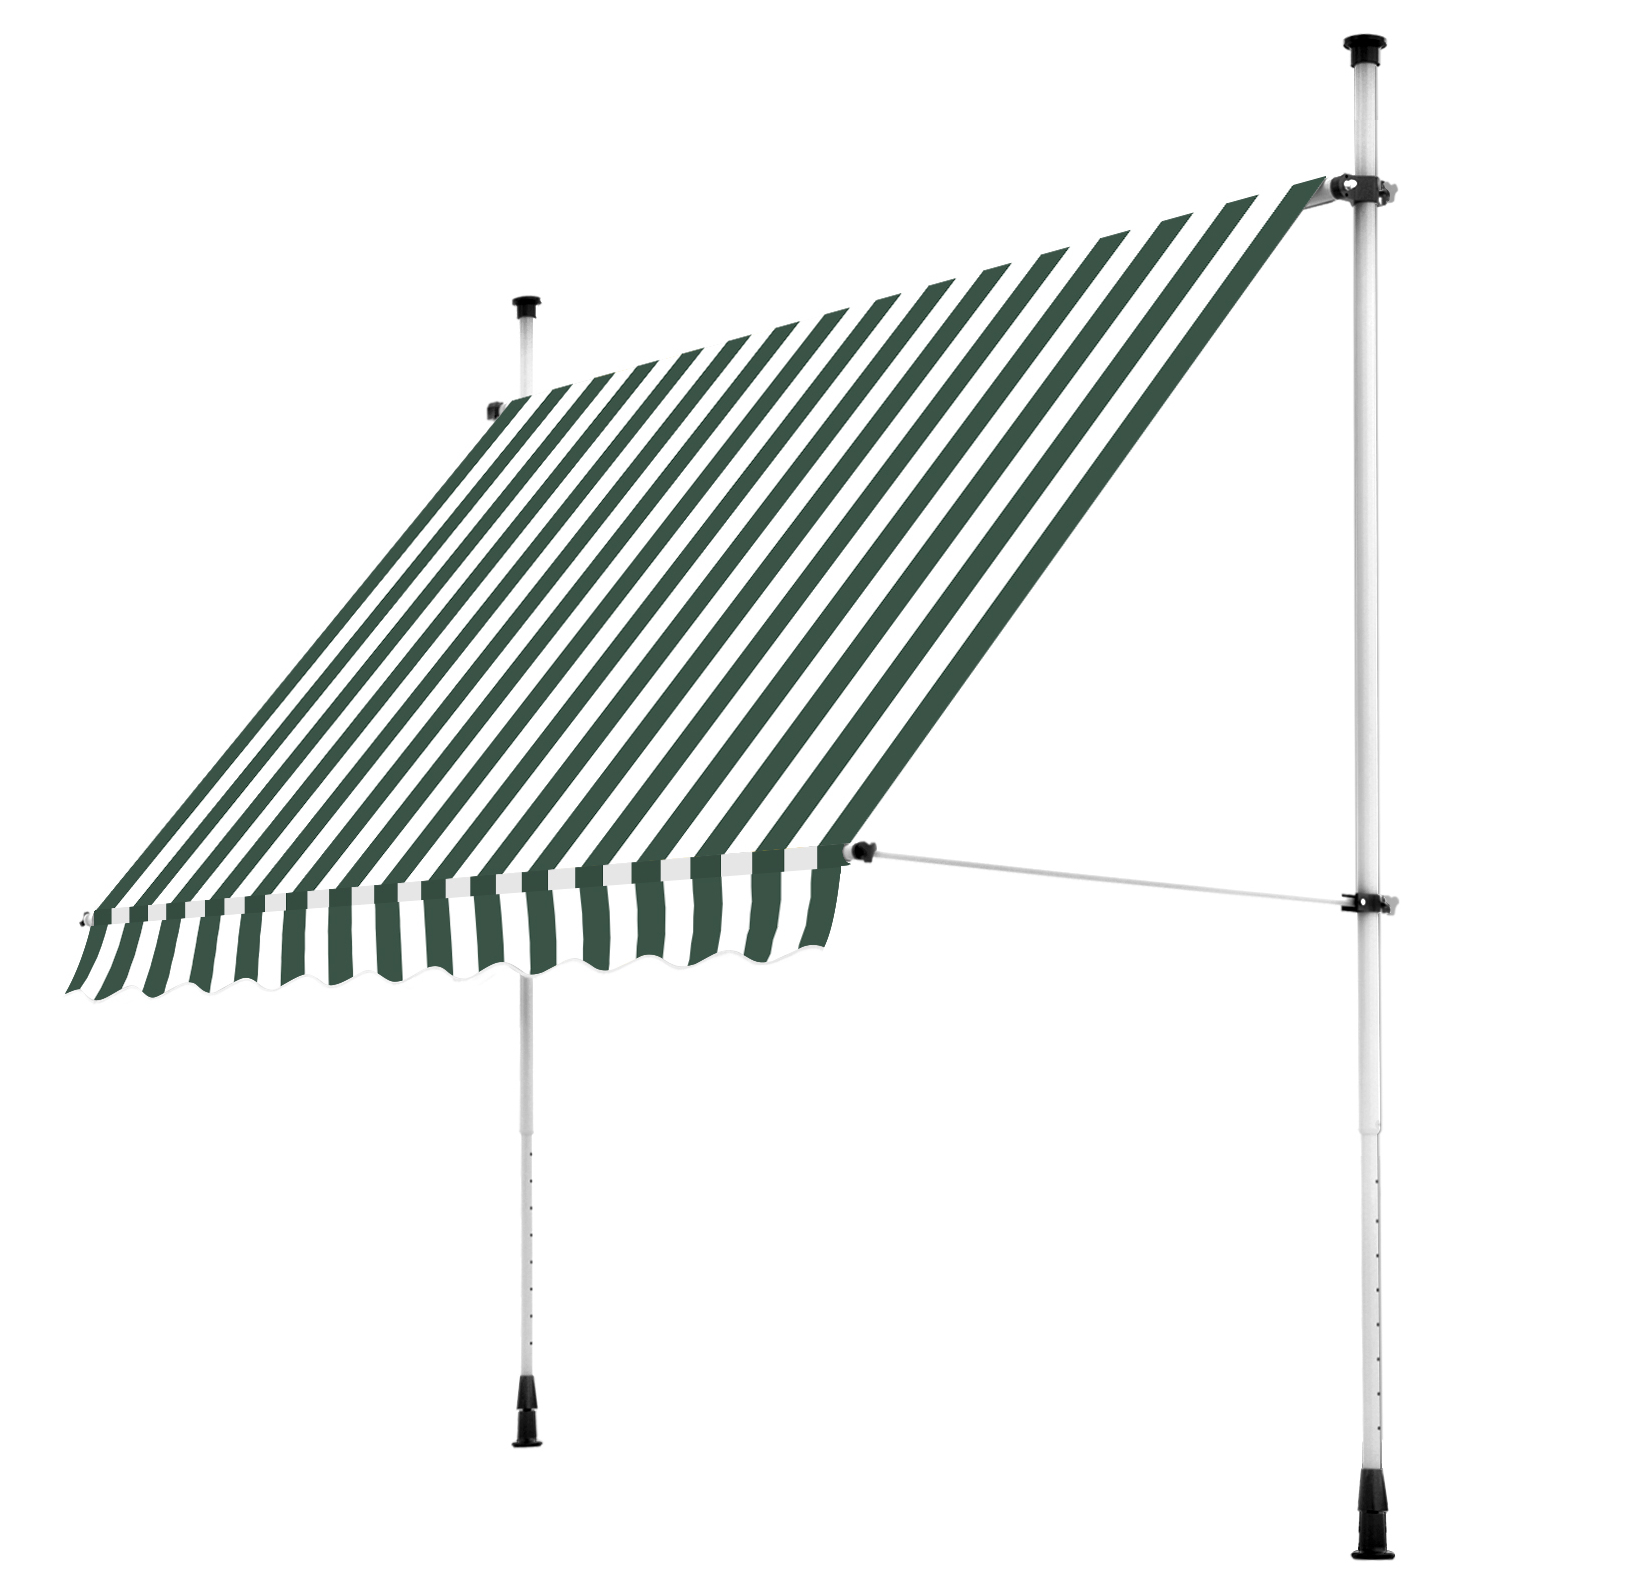 2.5m Balcony Manual Awning, Green And White £99.99